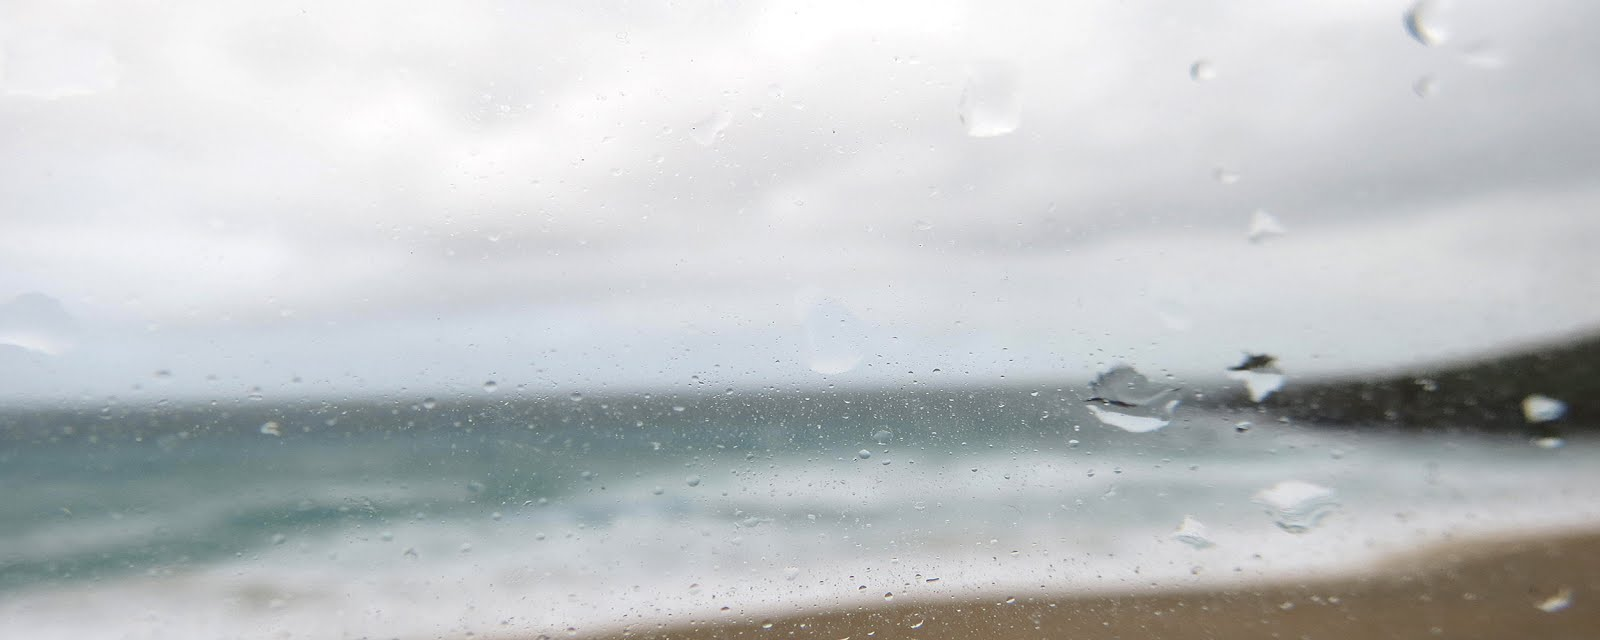 RAINY DAY - PORTHMEOR BEACH<br>OUR INSPIRING VIEW THROUGH THE STUDIO WINDOW